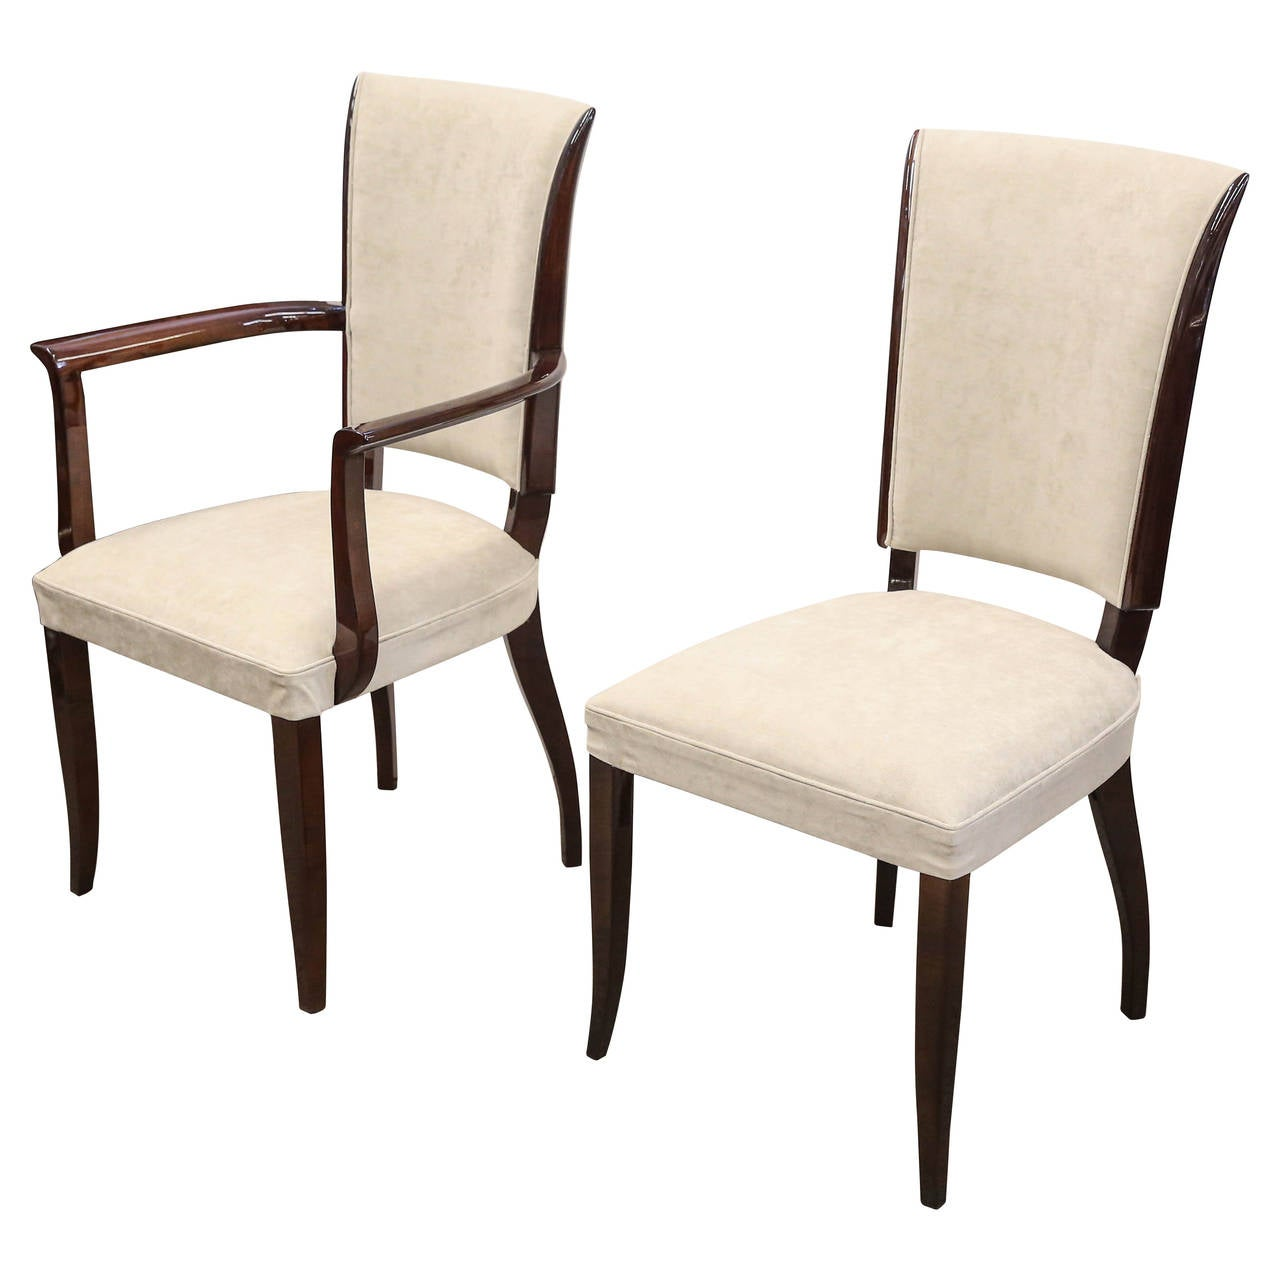 12 walnut dining room chairs at 1stdibs